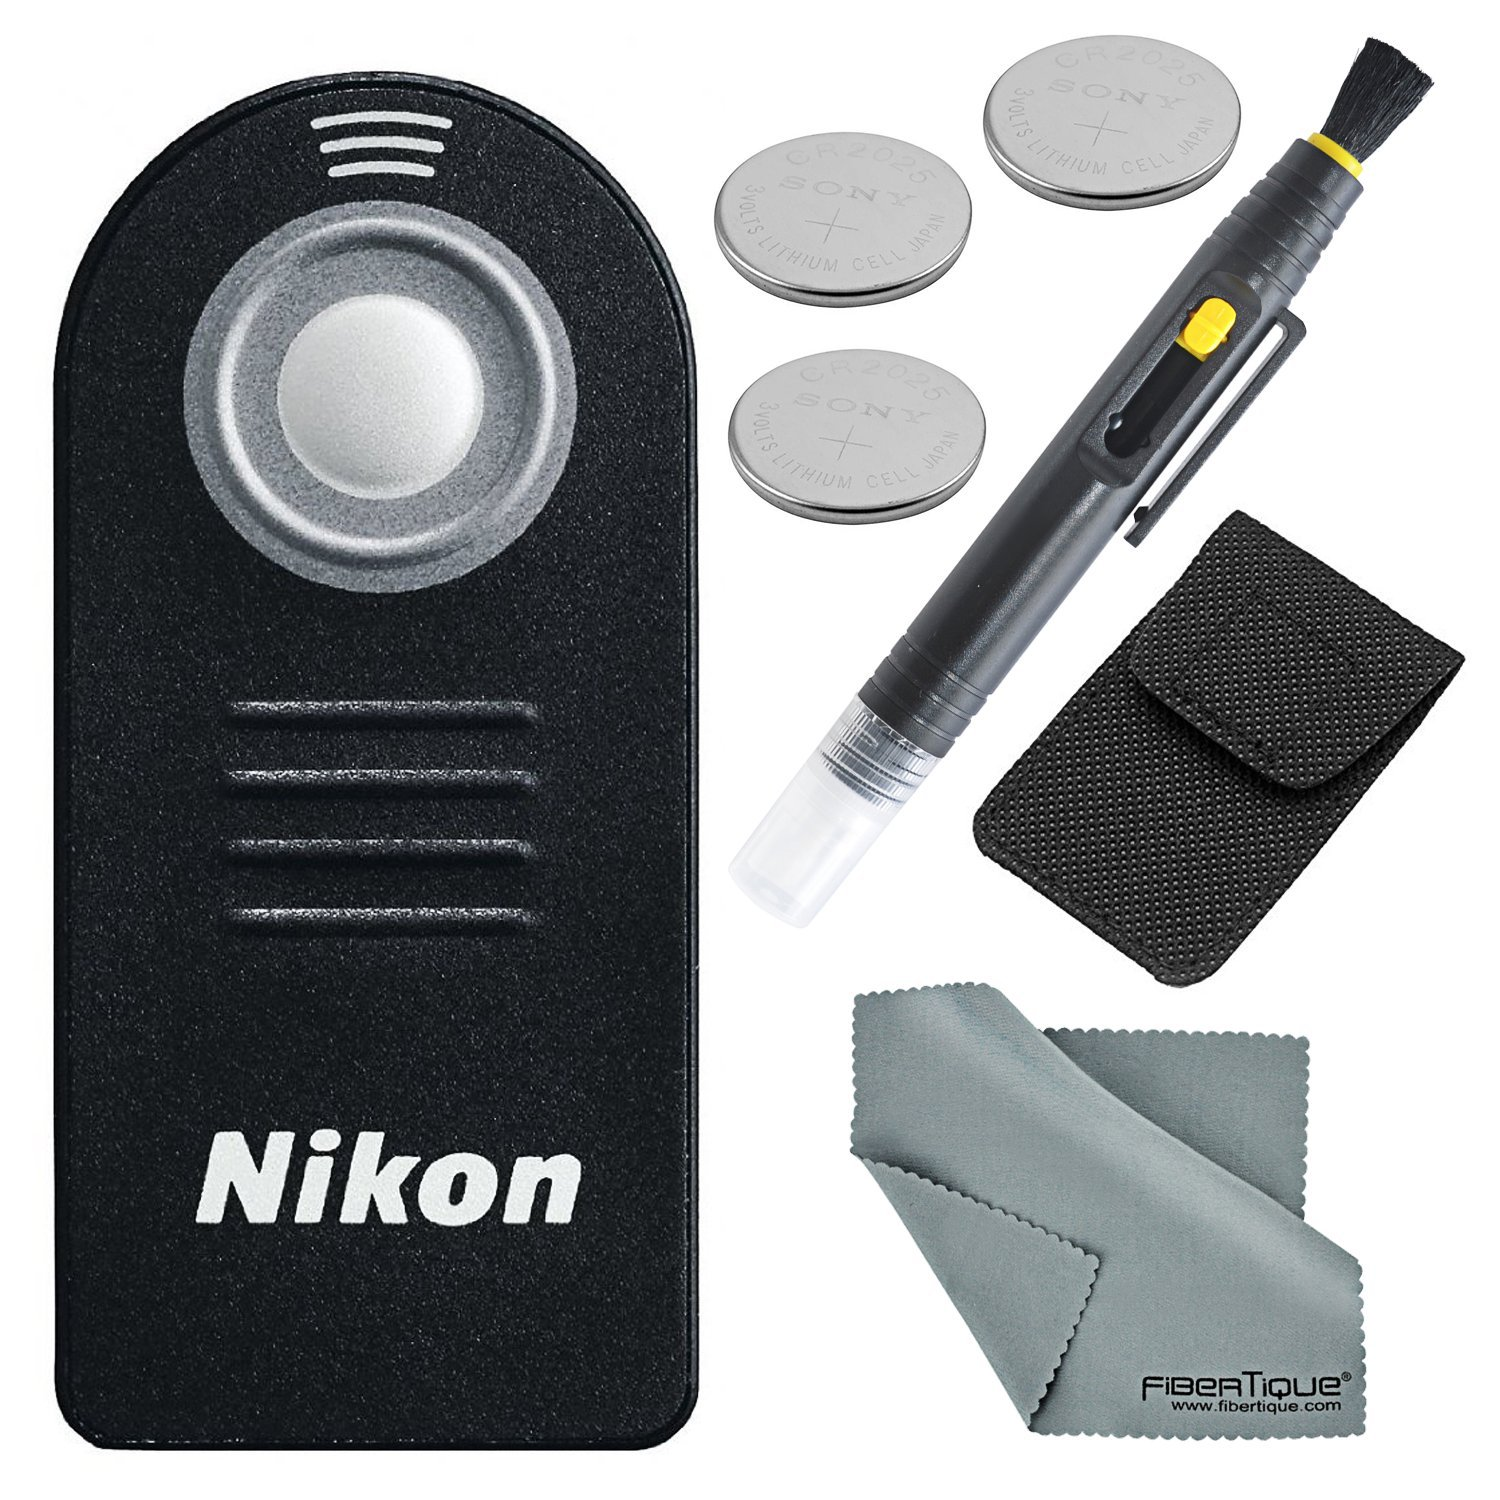 Nikon (Authentic) ML-L3 (infrared) Wireless Remote Control Bundle with 3 X Spare Battery + 2-in 1 Lens Cleaning Pen + Fibertique Cloth by Photo Savings